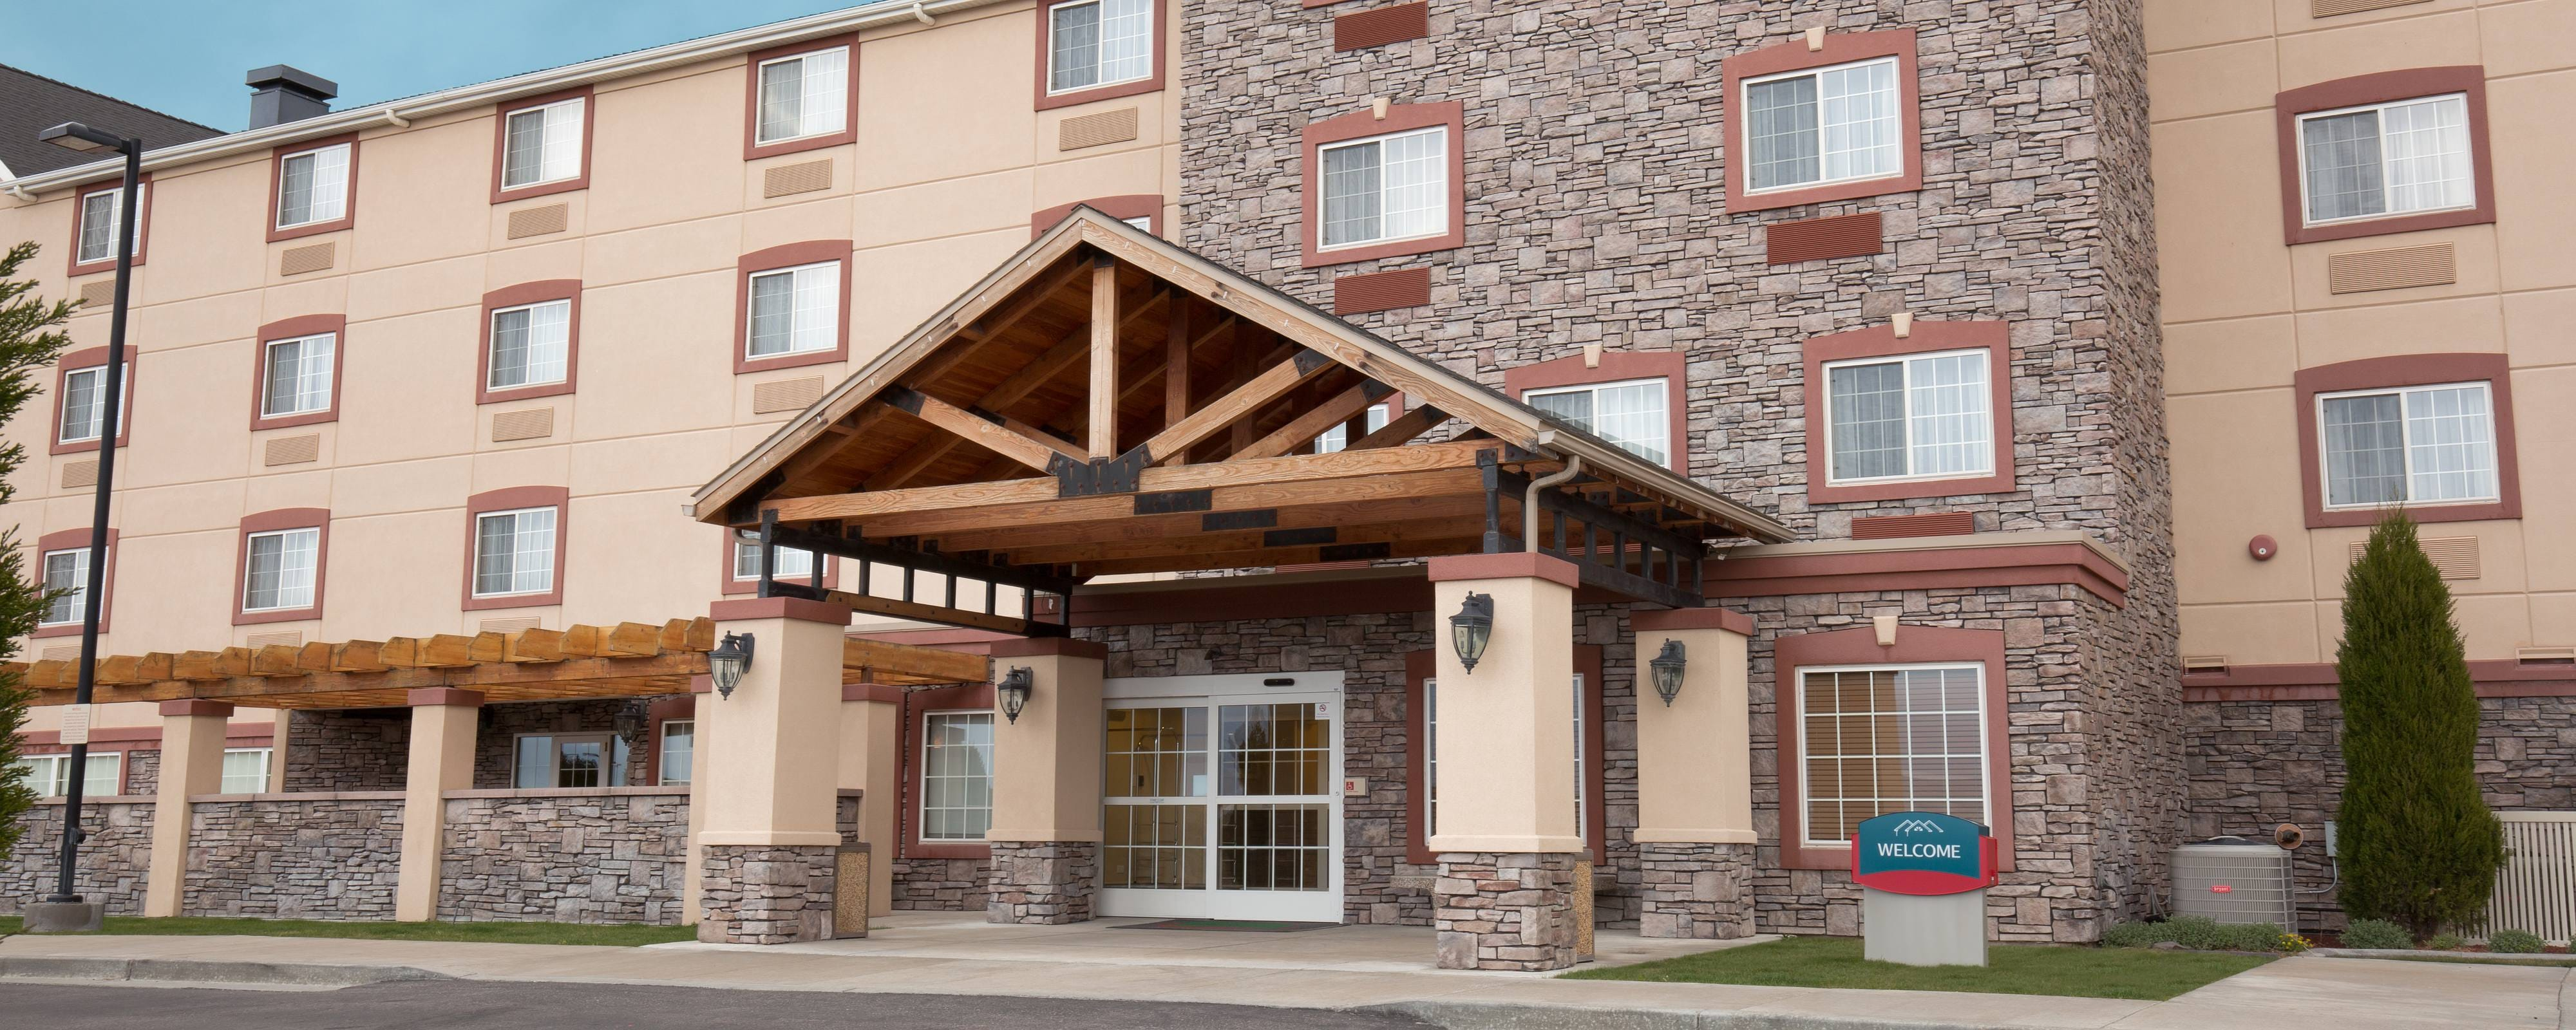 Pocatello Idaho Hotel Exterior Entrance